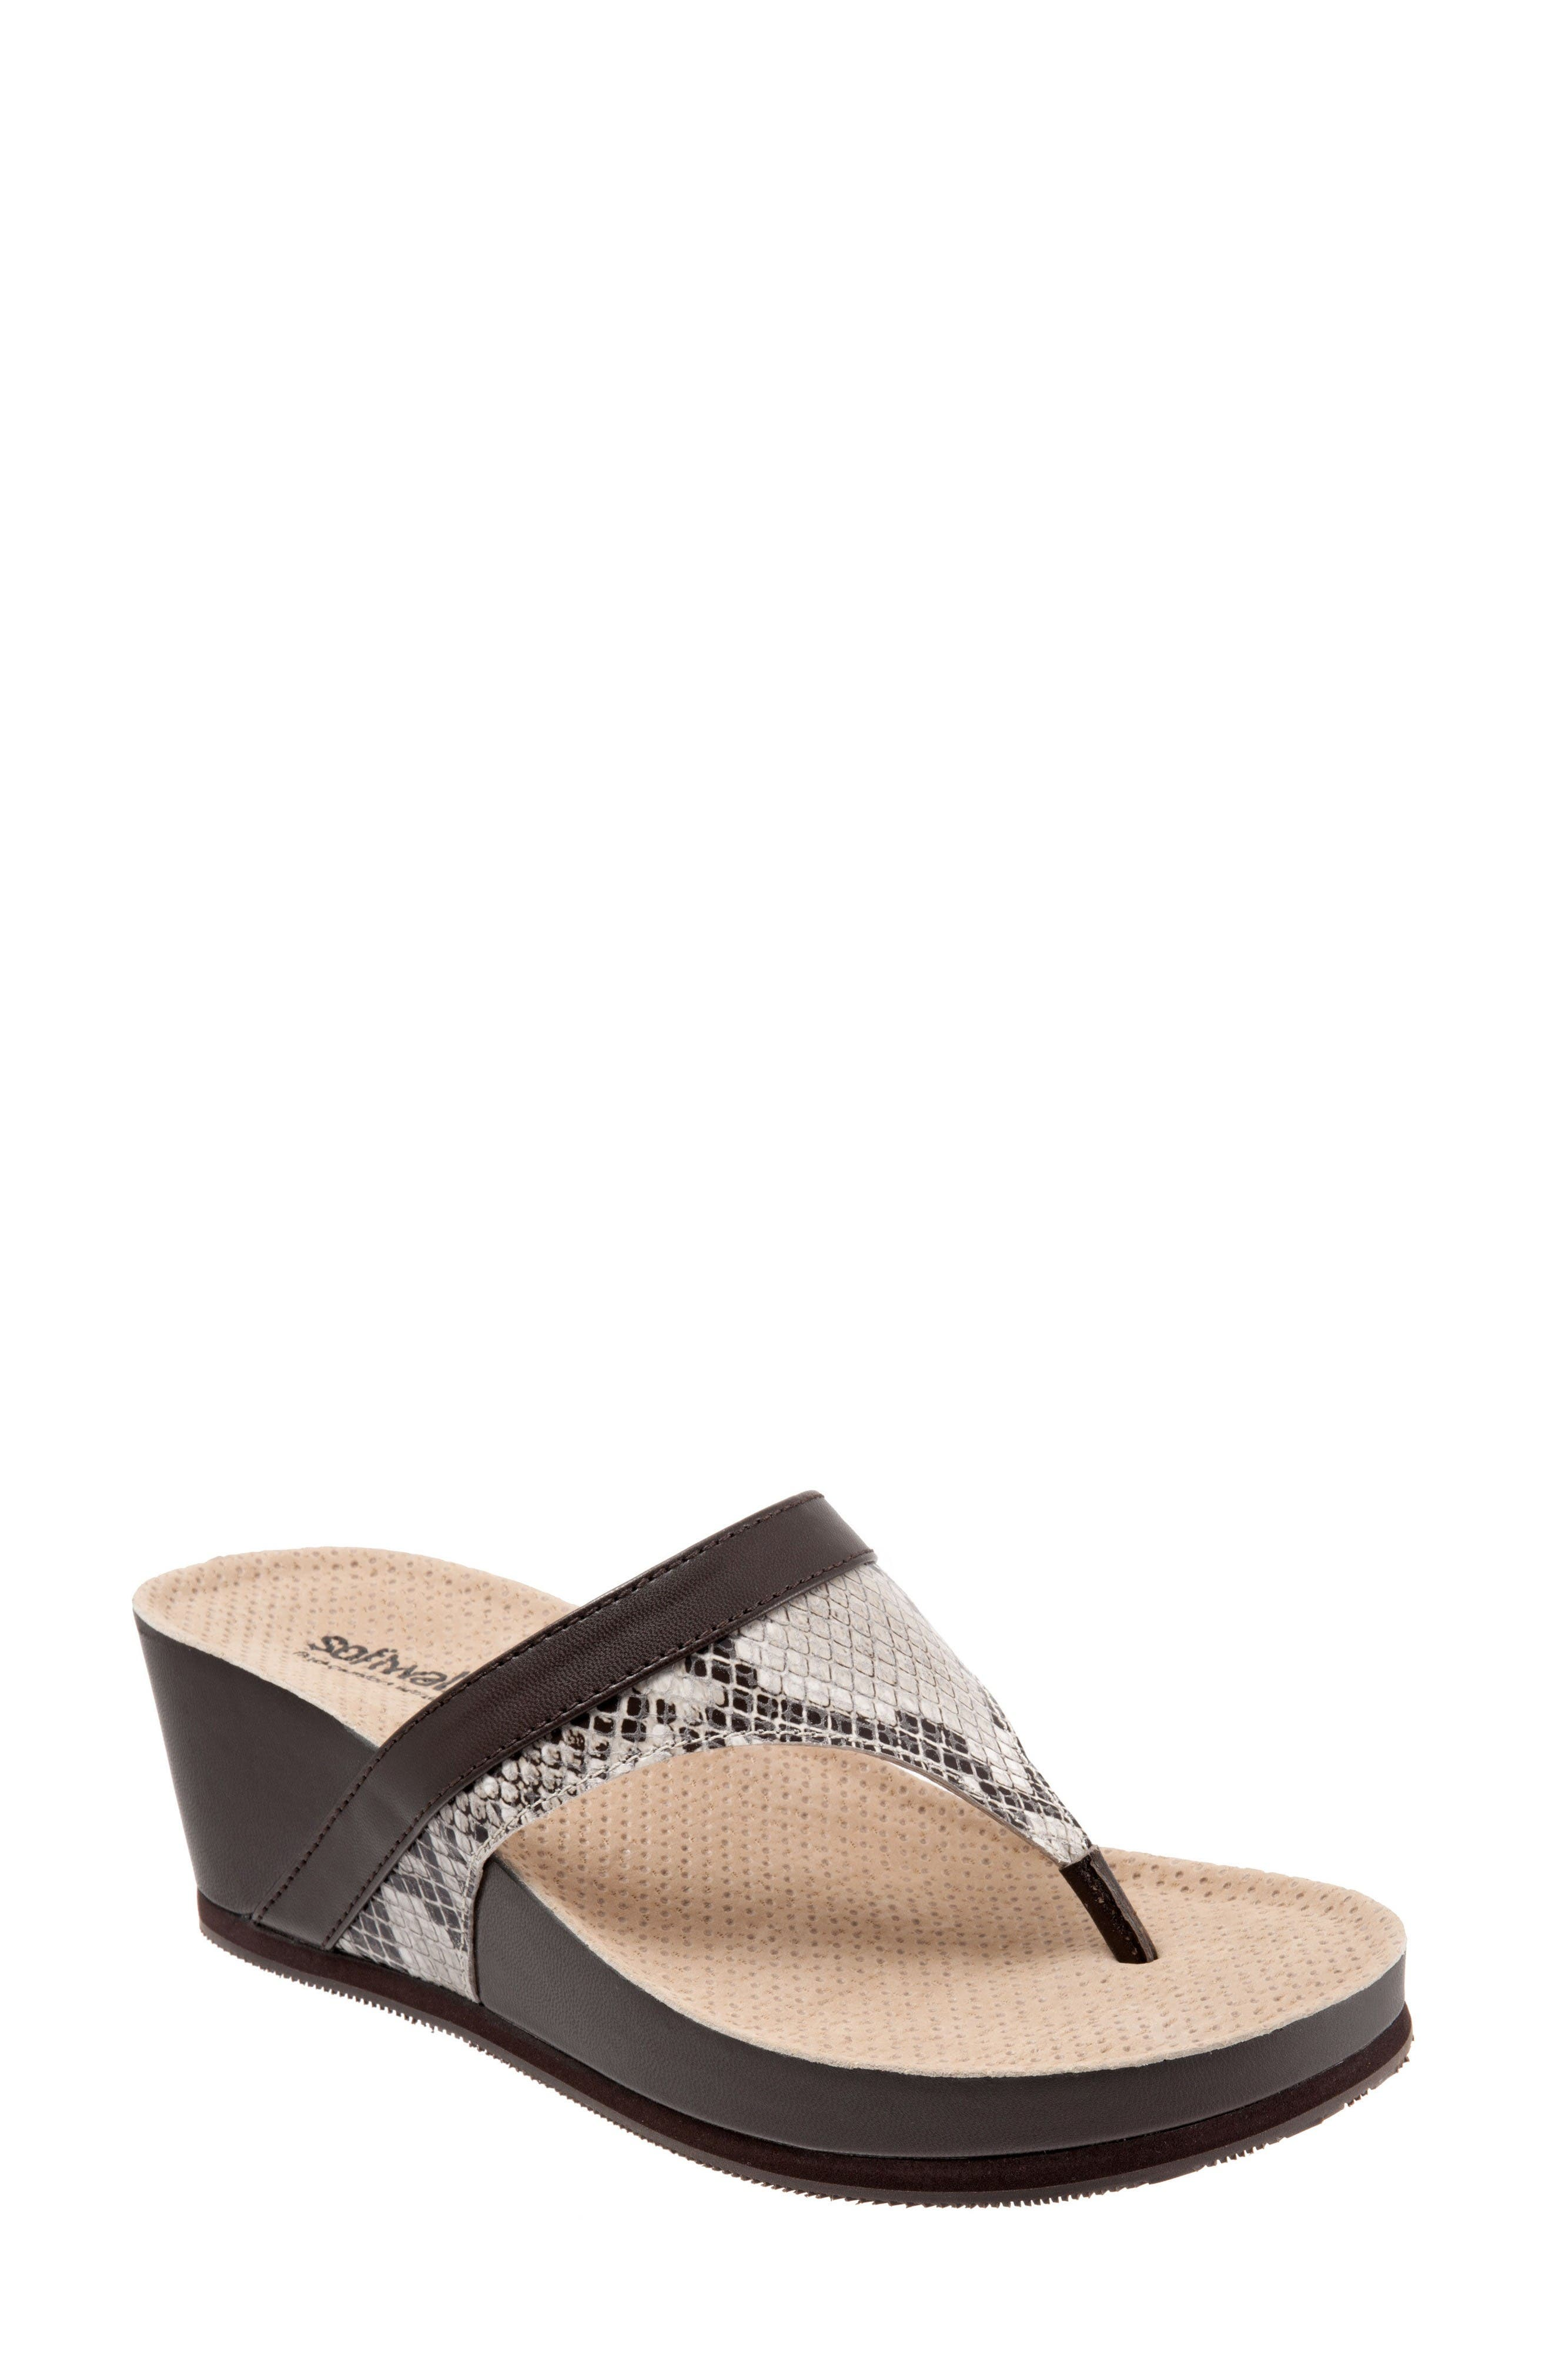 Heights Wedge Slide Sandal,                         Main,                         color, Brown Leather